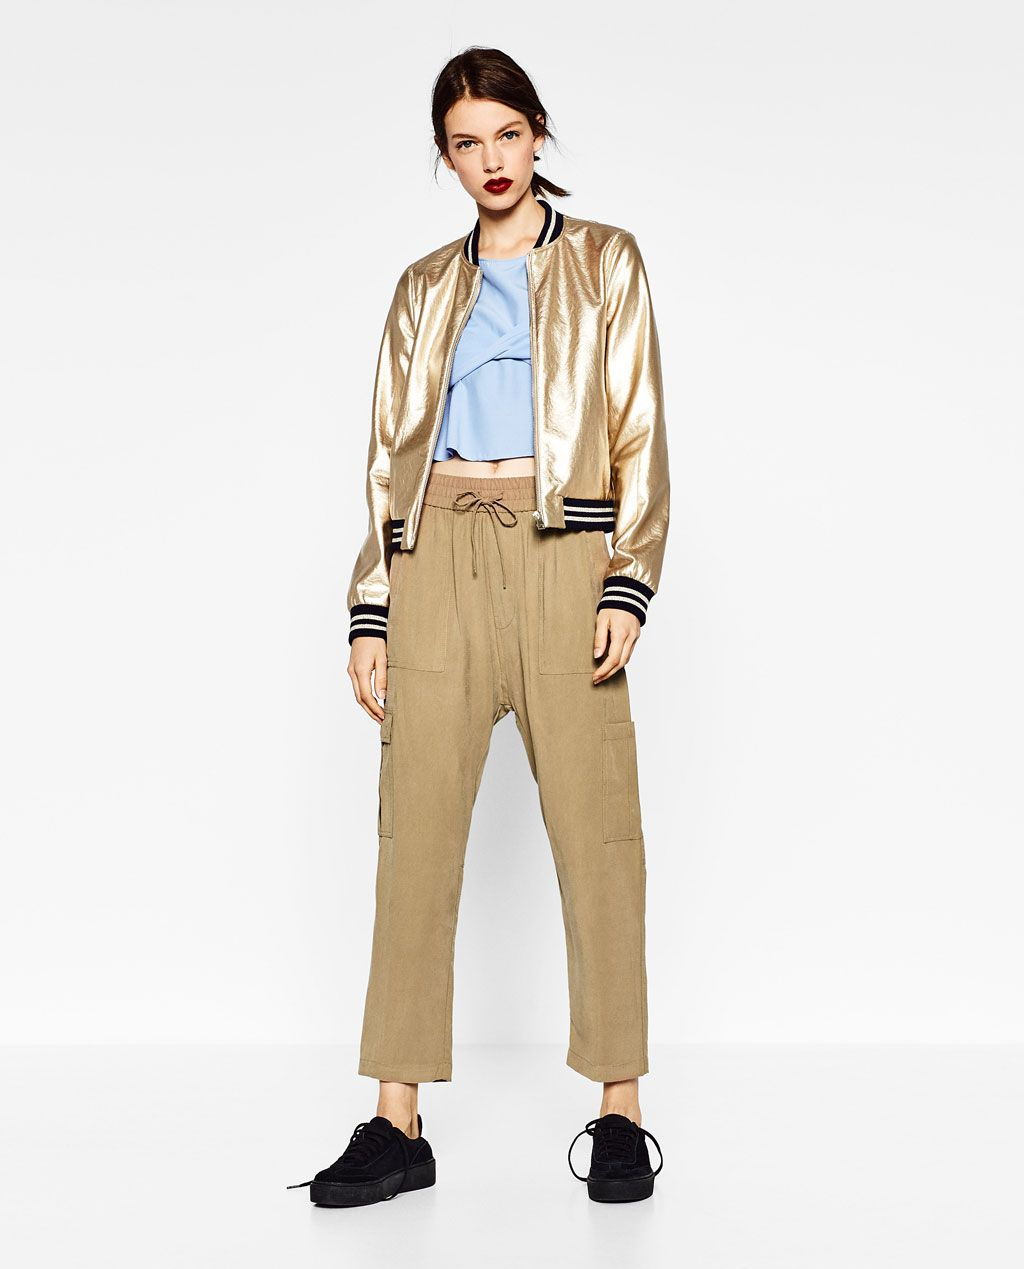 Image 1 of GOLD-TONED BOMBER JACKET from Zara   Donne   Pinterest ... 05b95d73bd38